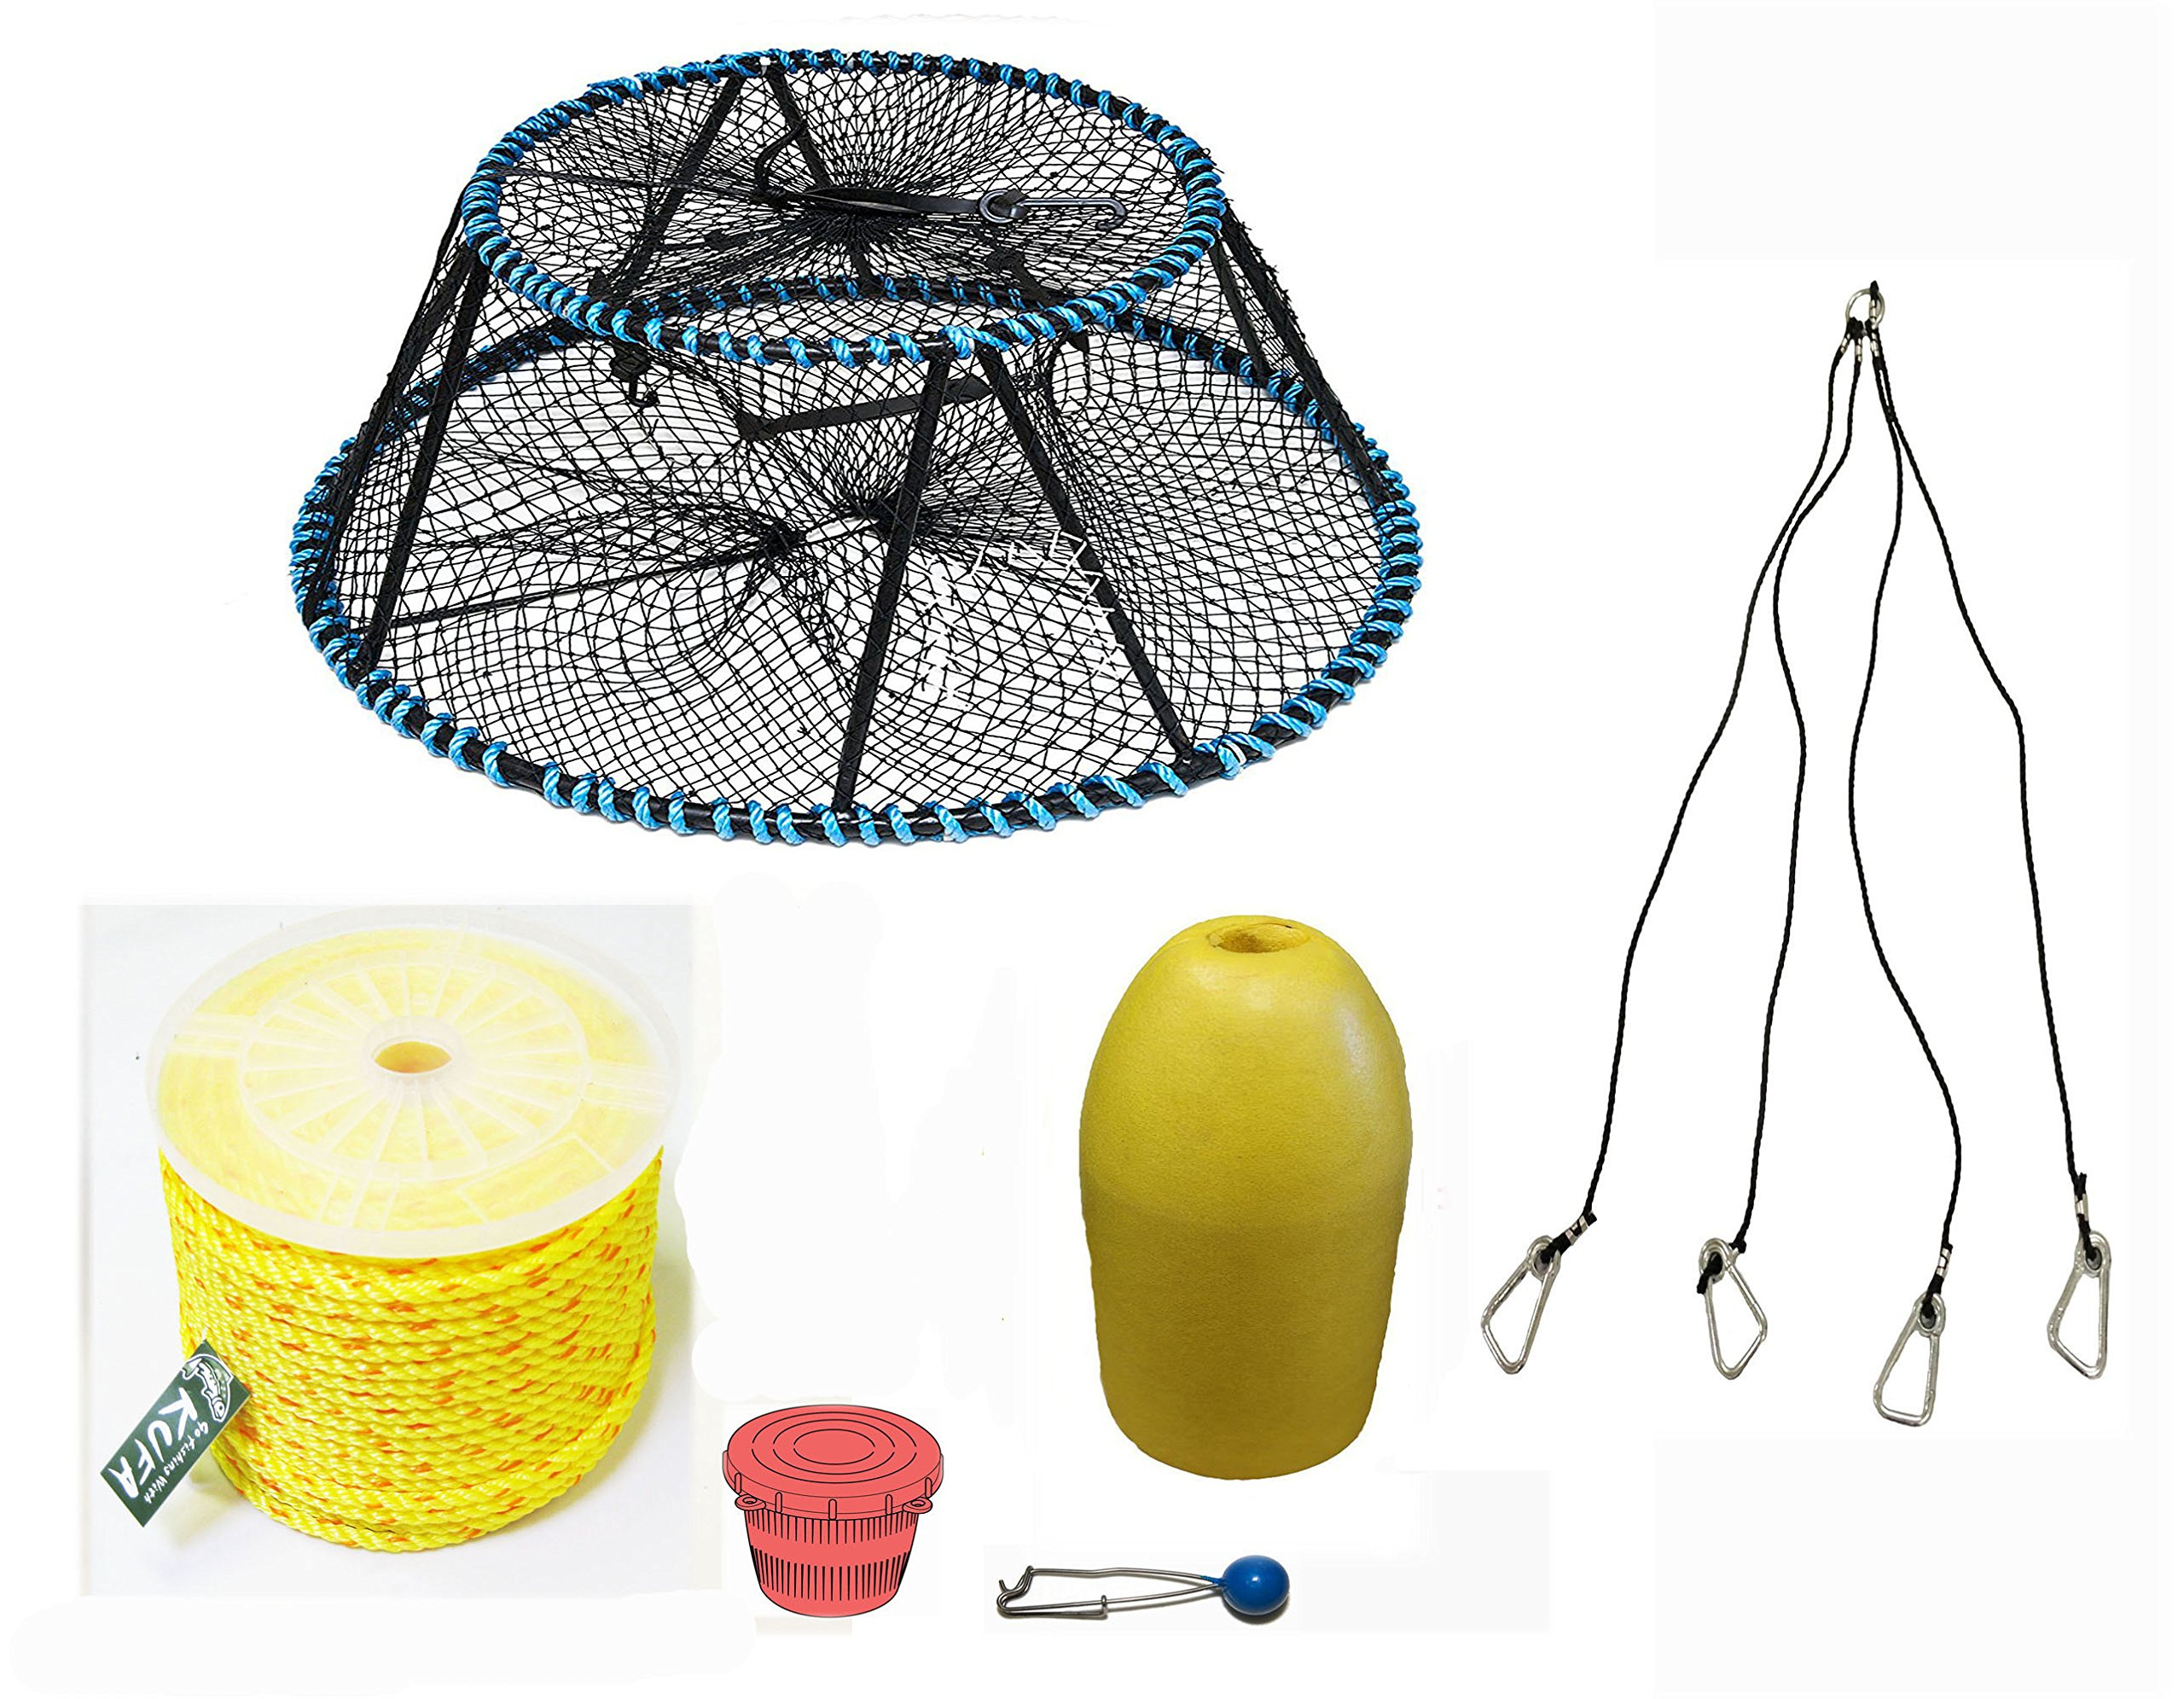 KUFA Sports Tower Style Prawn trap with 400' rope, Yellow float, Bait Jar & Harness Combo(CT130+PAP3+HA5) by KUFA Sports